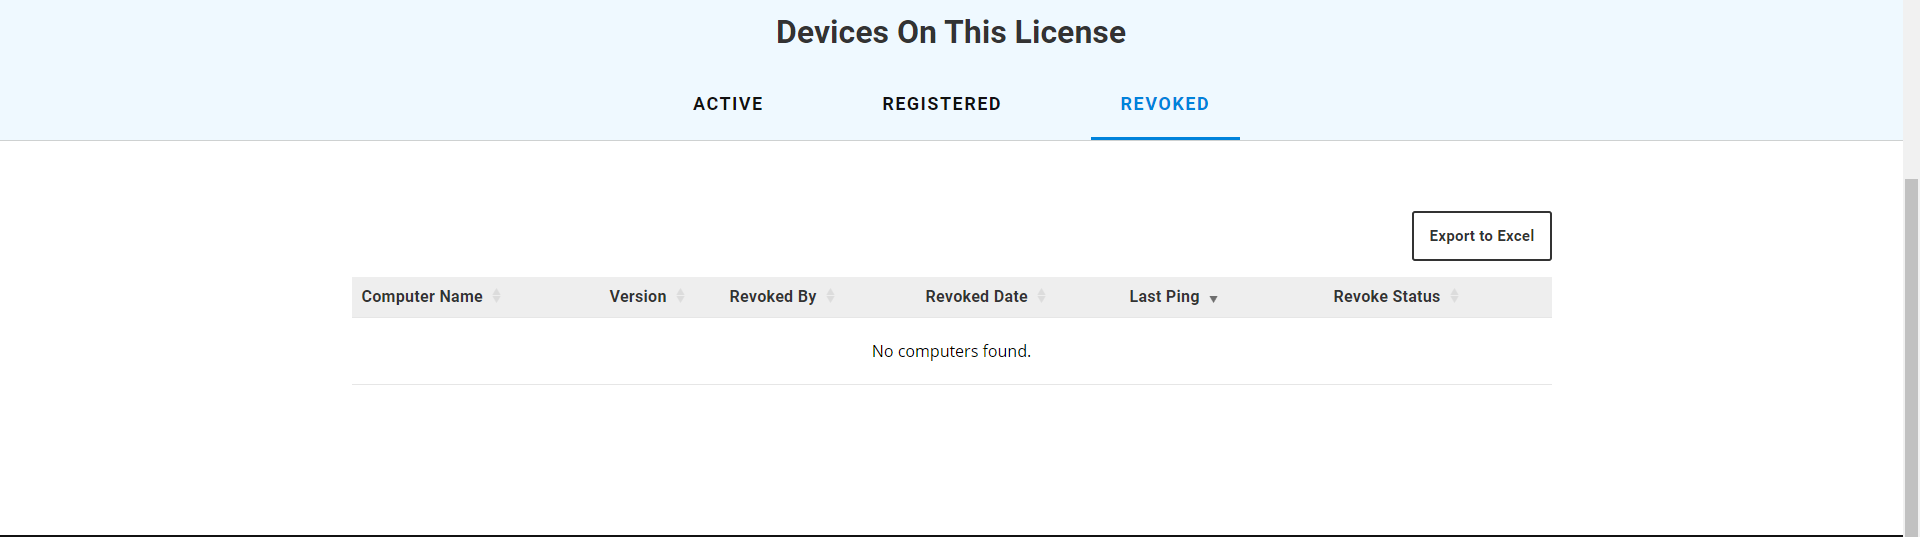 Revoked devices on open license in Bluebeam Revu